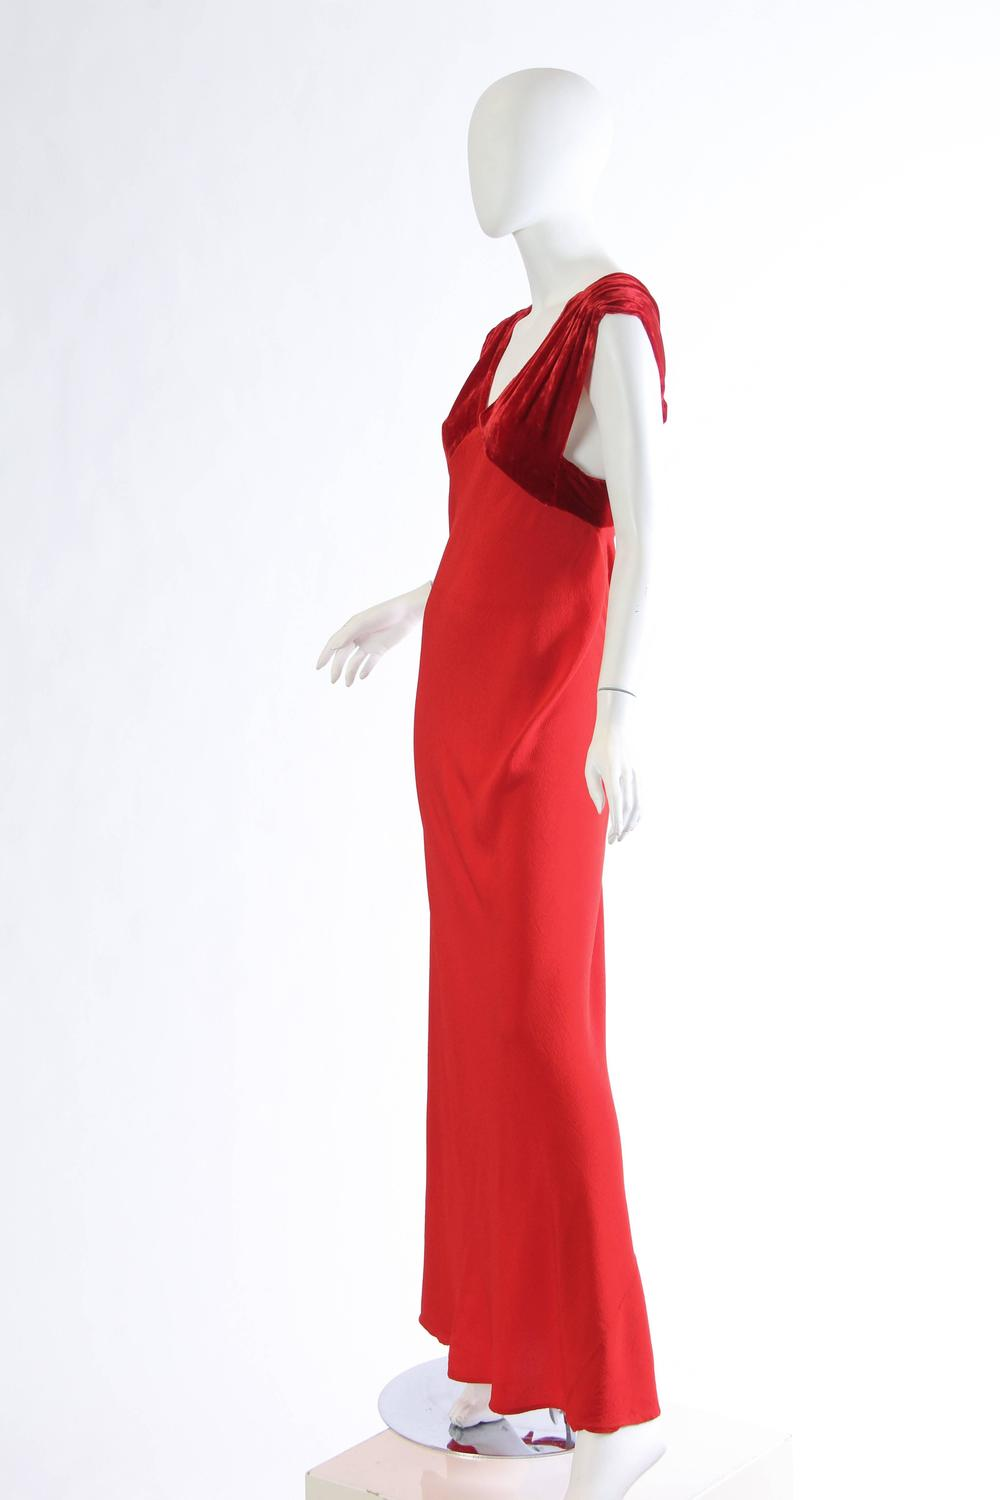 1930s Backless Red Bias Cut Gown For Sale at 1stdibs